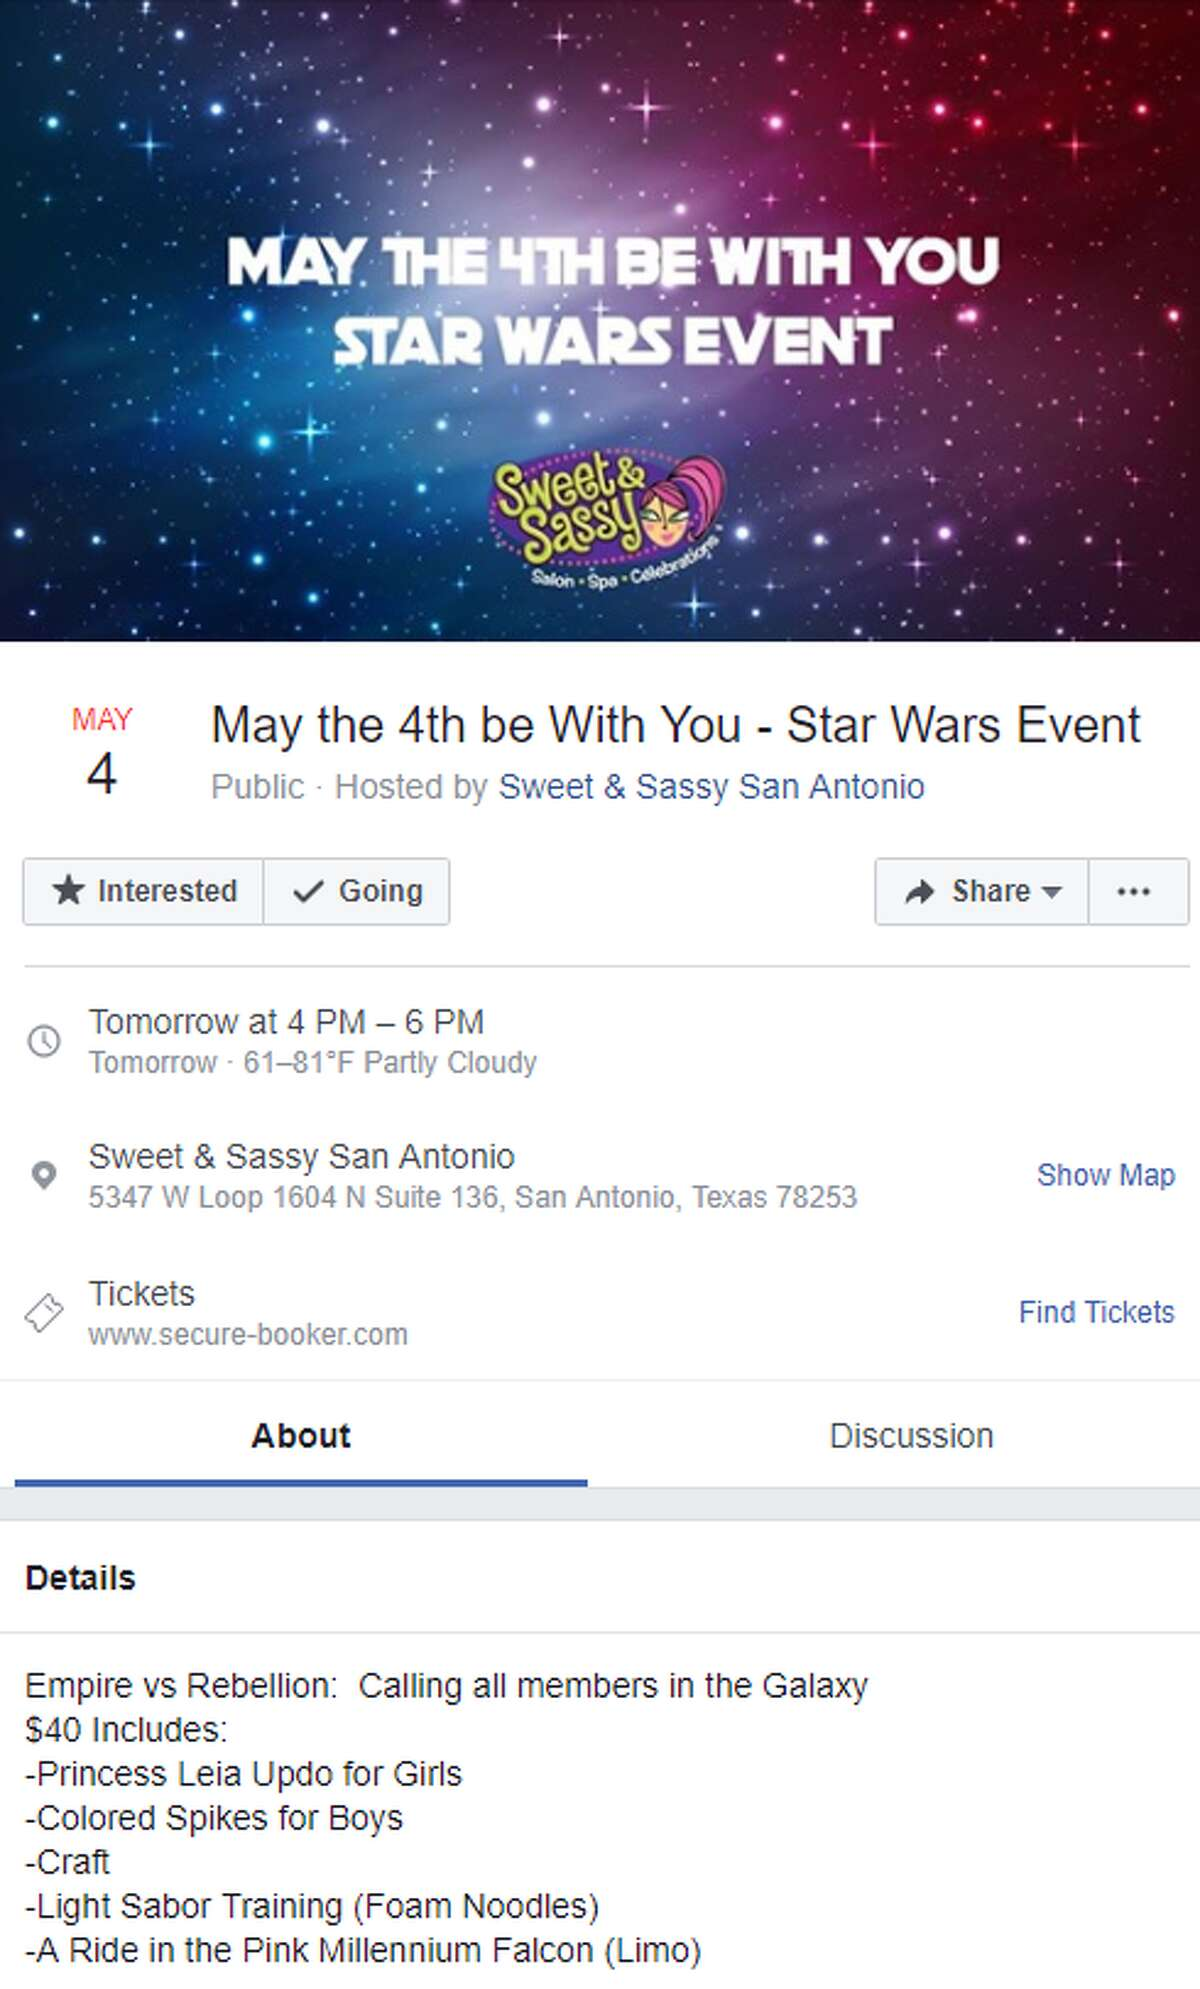 Sweet & Sassy's $40 May the 4th Be With You Empire vs. Rebellion Package